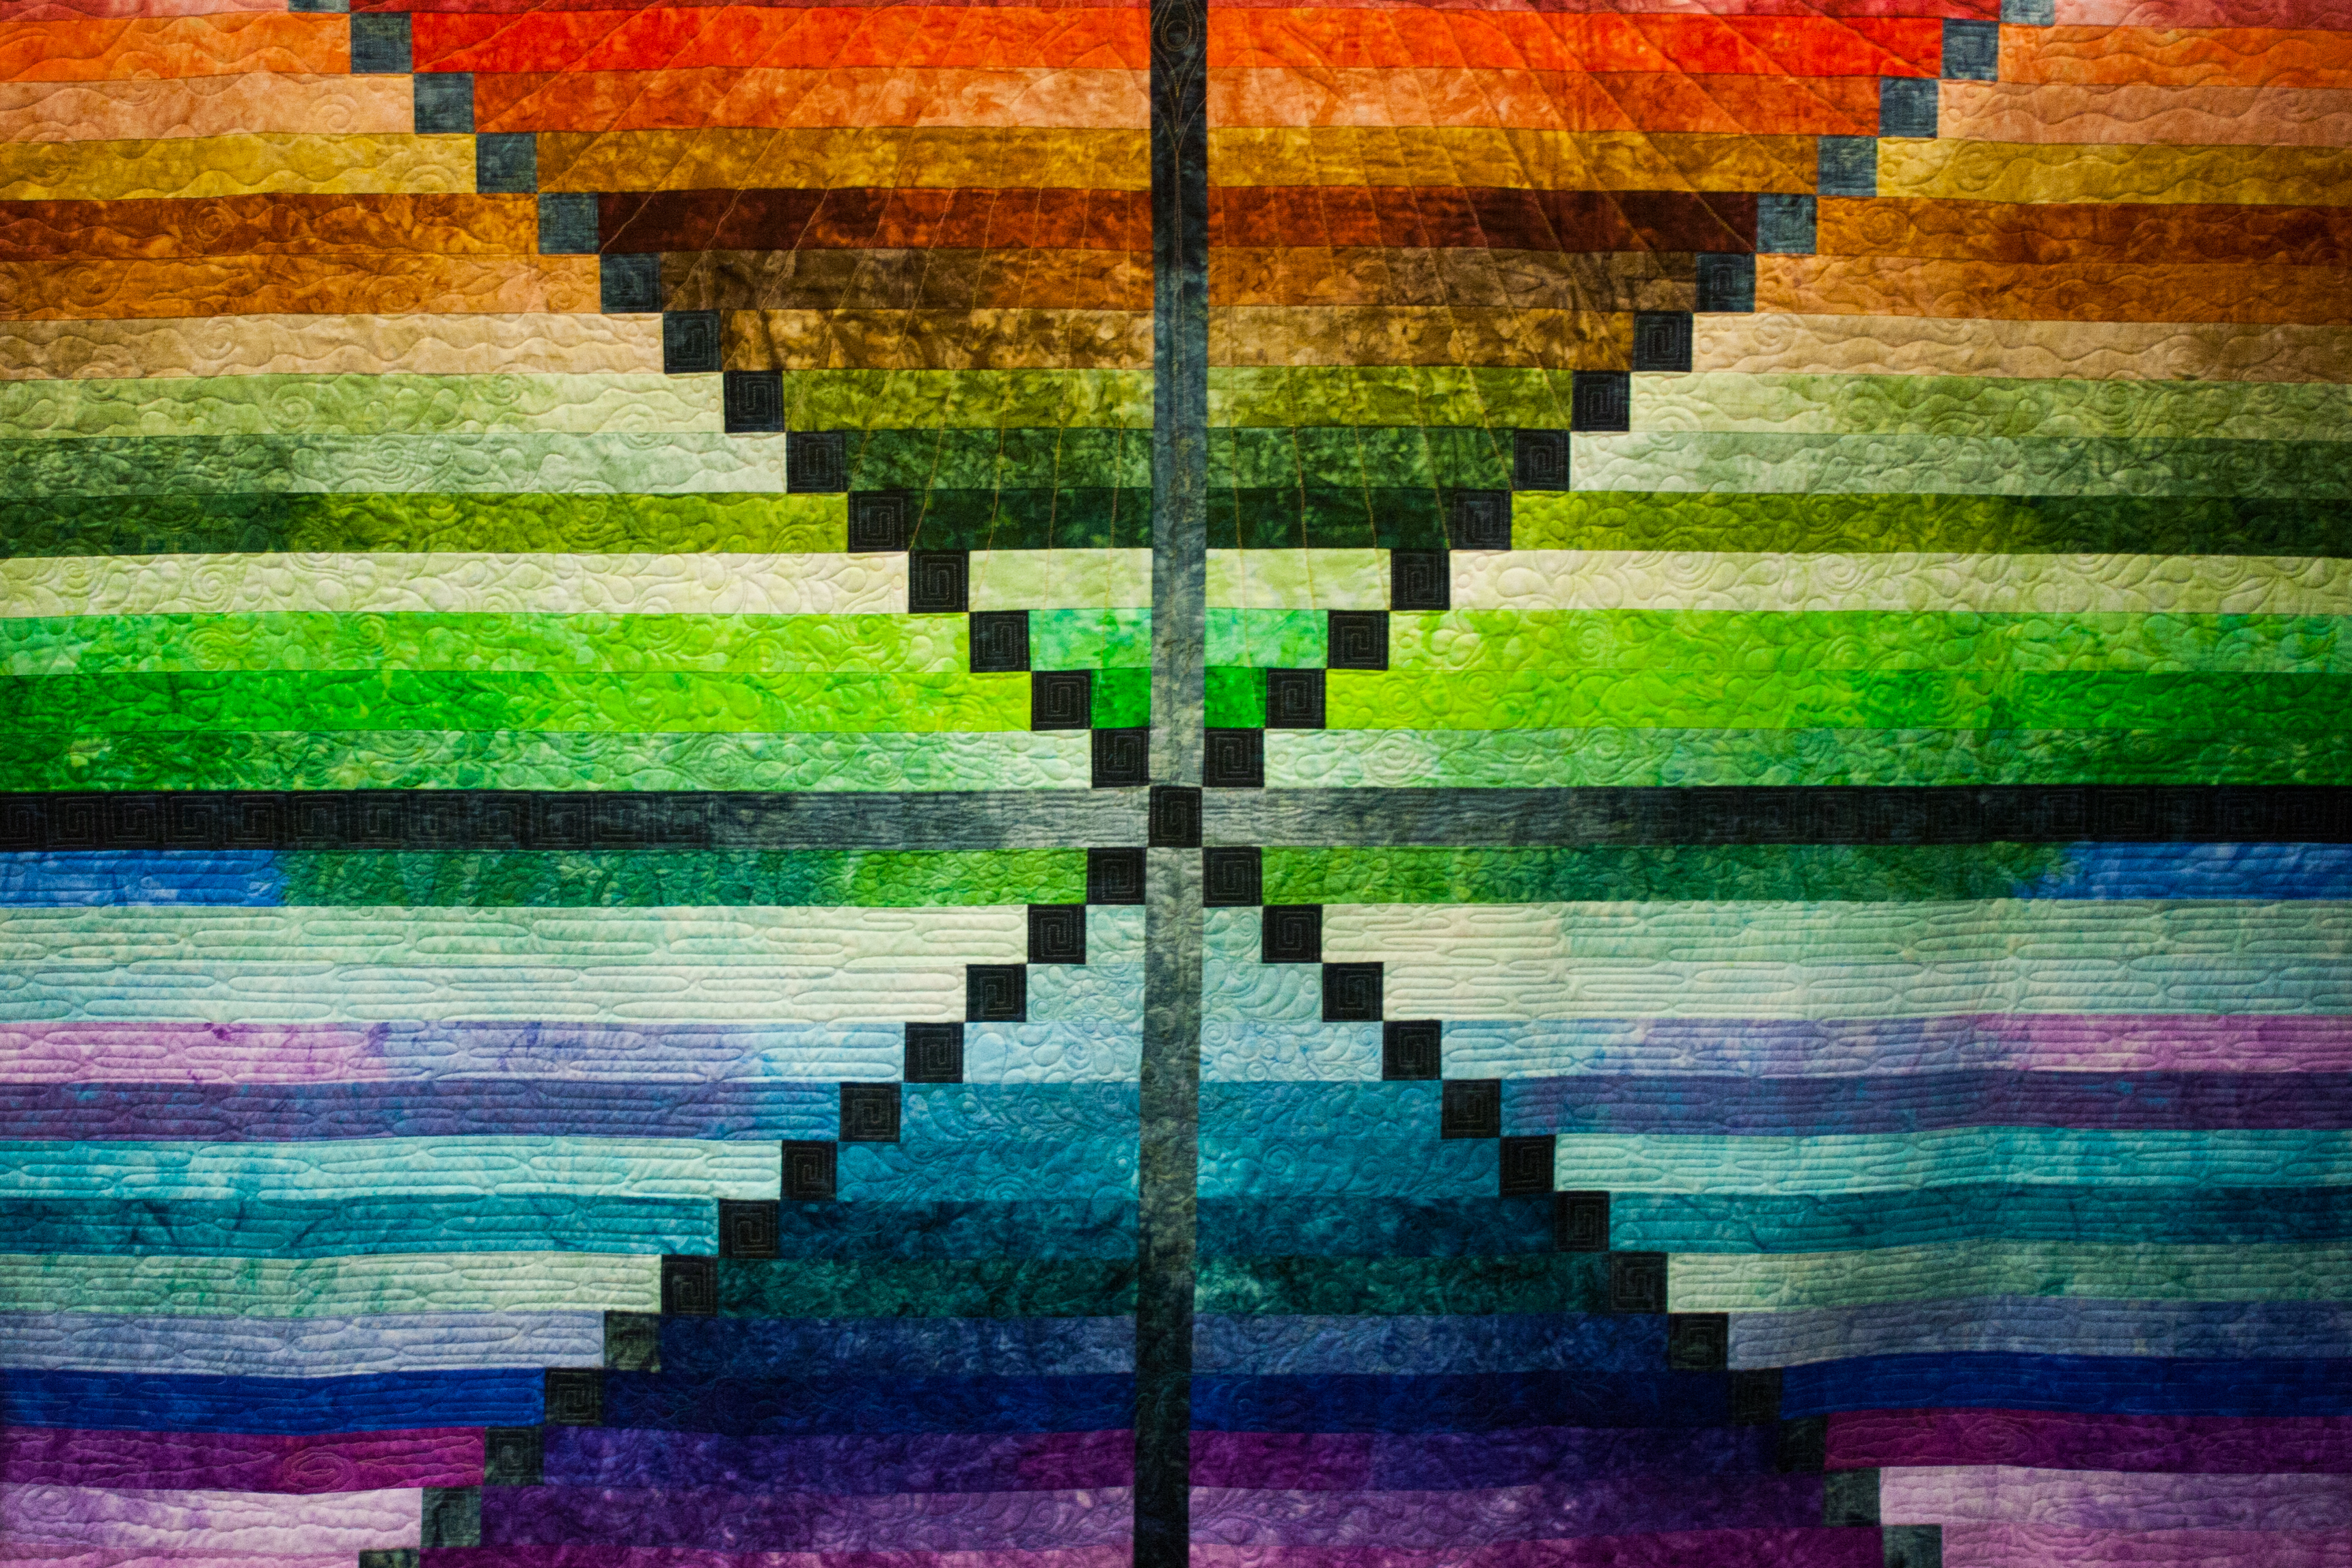 27th Annual Indiana Heritage Quilt Show : indiana heritage quilt show - Adamdwight.com